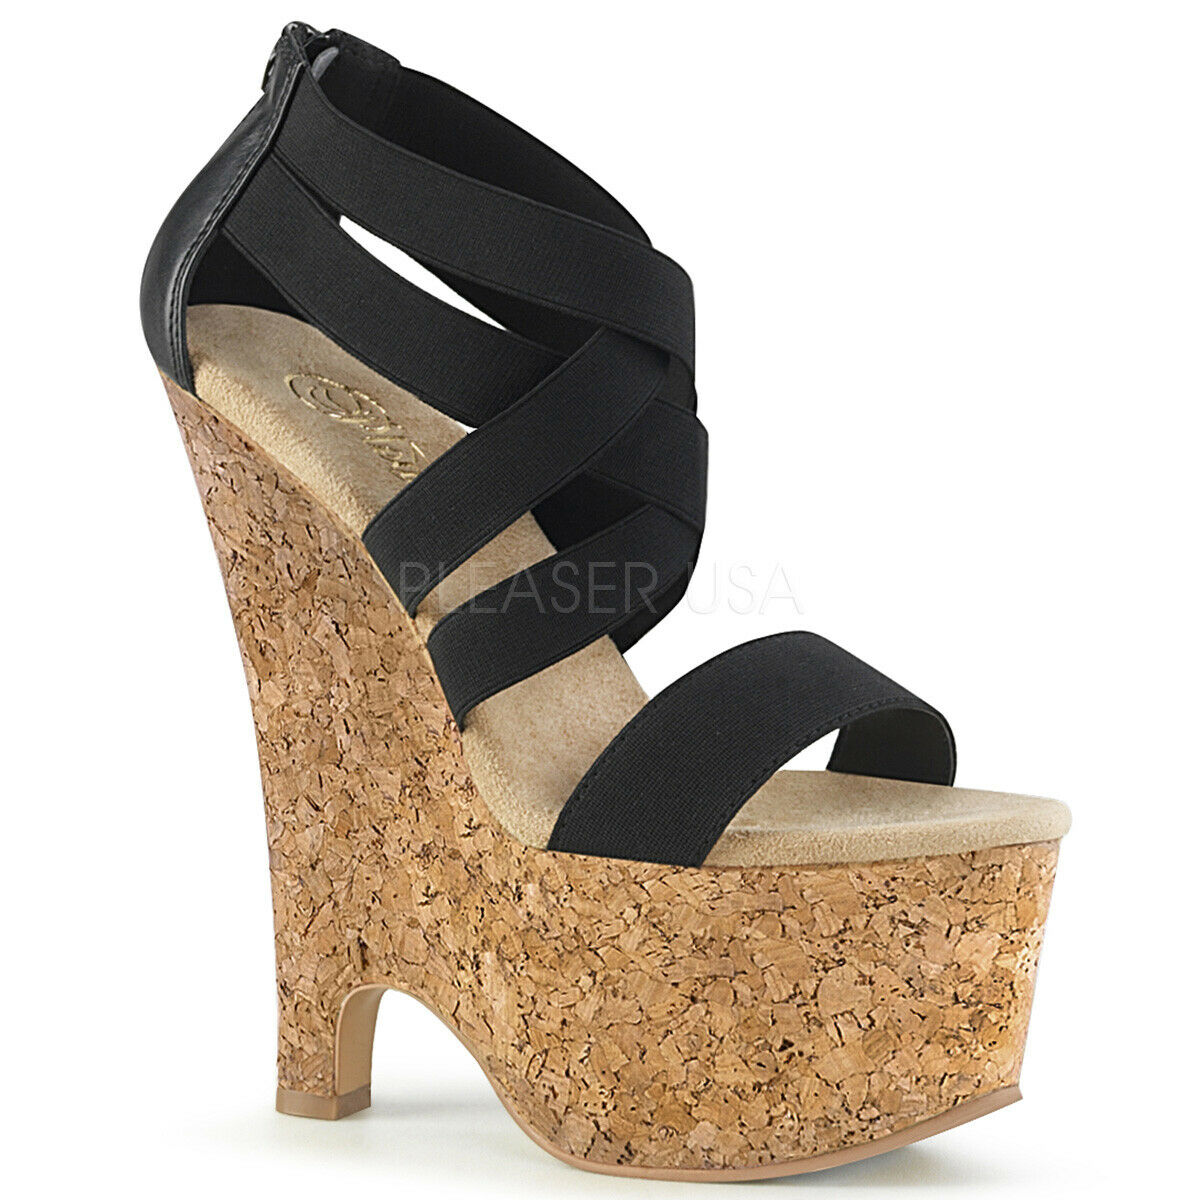 Beau 669 6.5  Cork Wrap Wedge Wedge Wedge Sexy Elastic Strap Comfort Perfect Fit shoes 5-12 b4d232